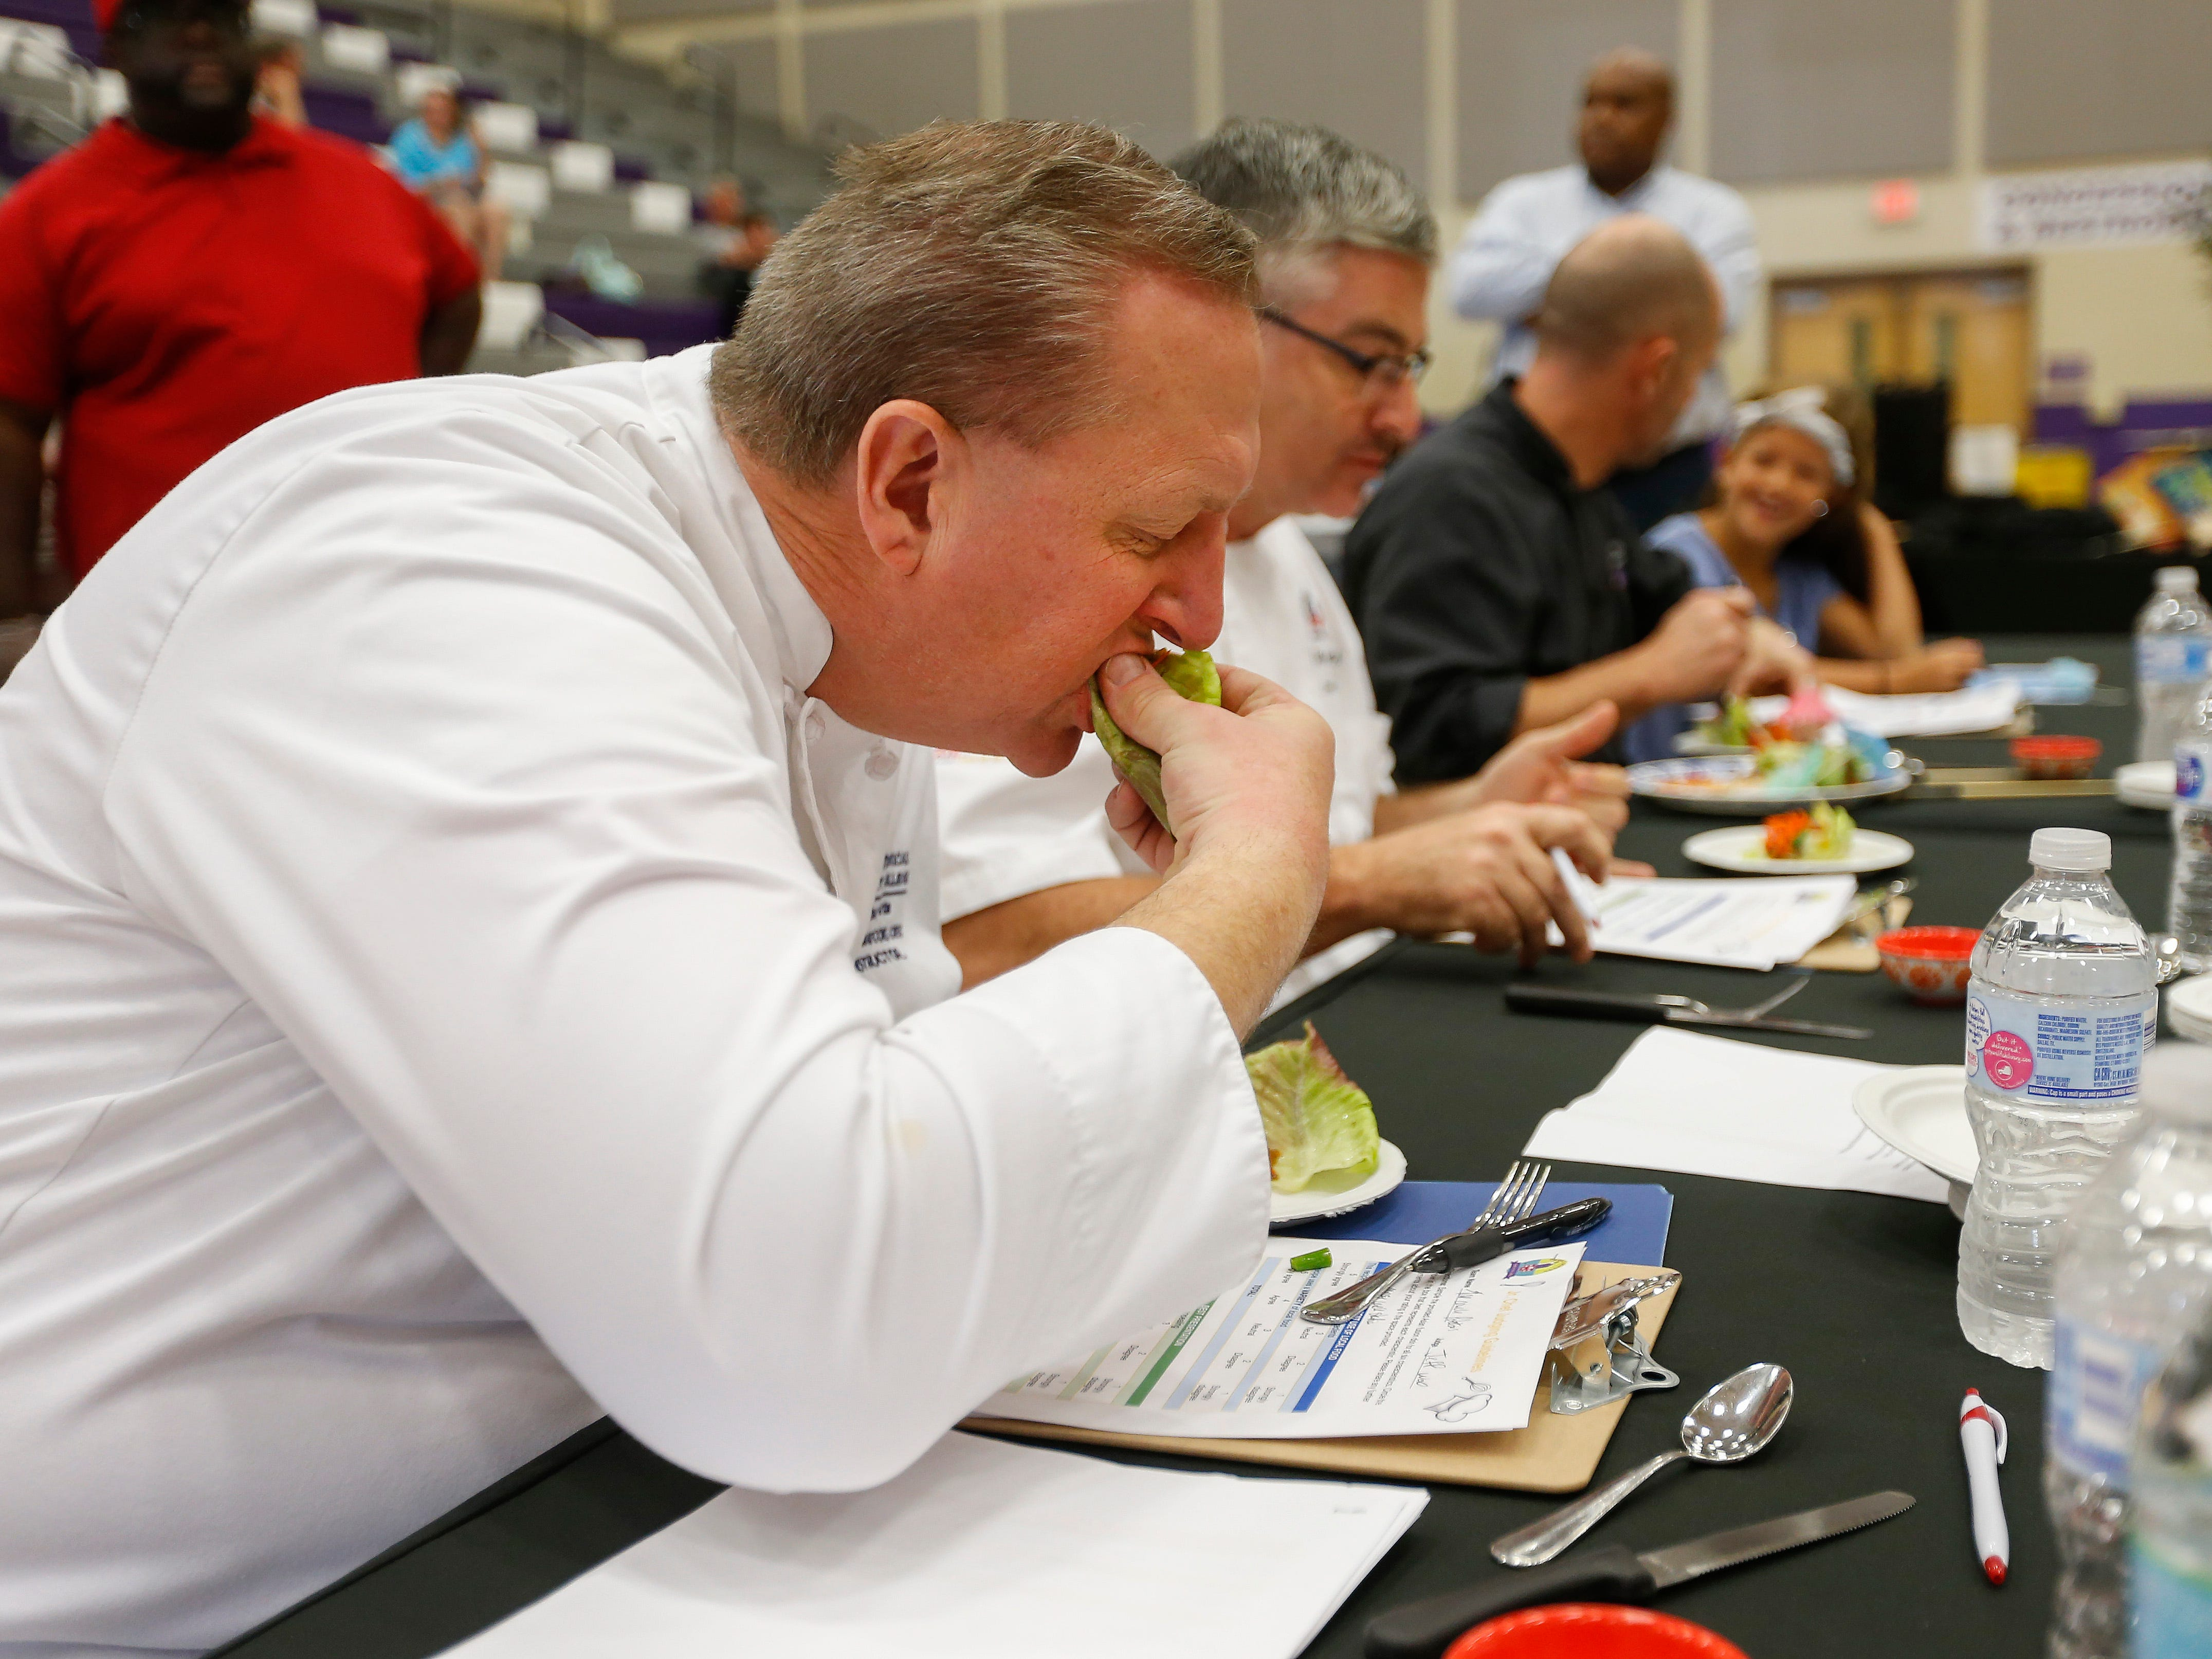 Chef Jeff Ward and the other judges taste a lettuce wrap during the third annual Junior Chef Competition at Hickory Hills Middle School on Saturday, Sept. 29, 2018.